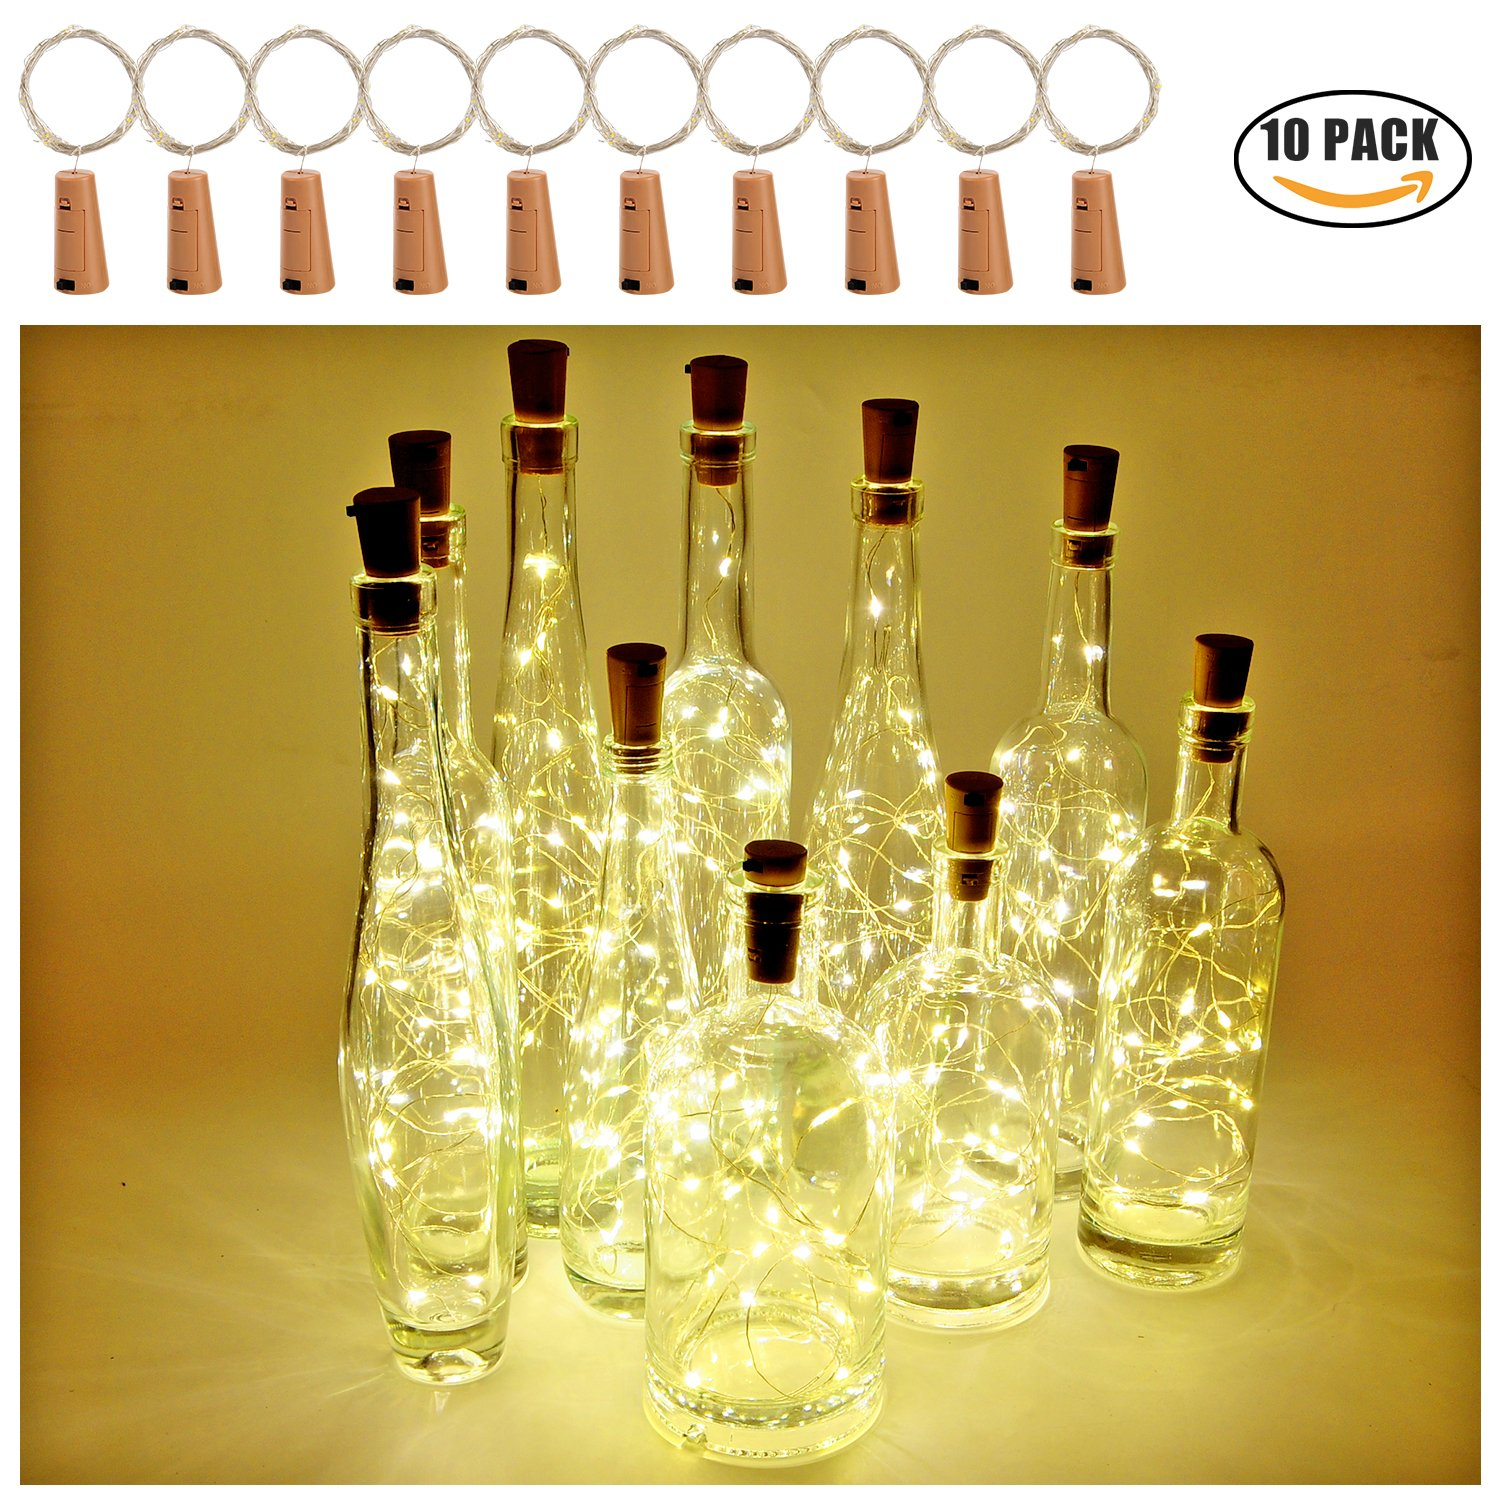 Wine Bottle Lights with Cork Espier 20 LED 10 Pack Battery Operated String Light for DIY Party Christmas Halloween Wedding Decoration (Warm White)